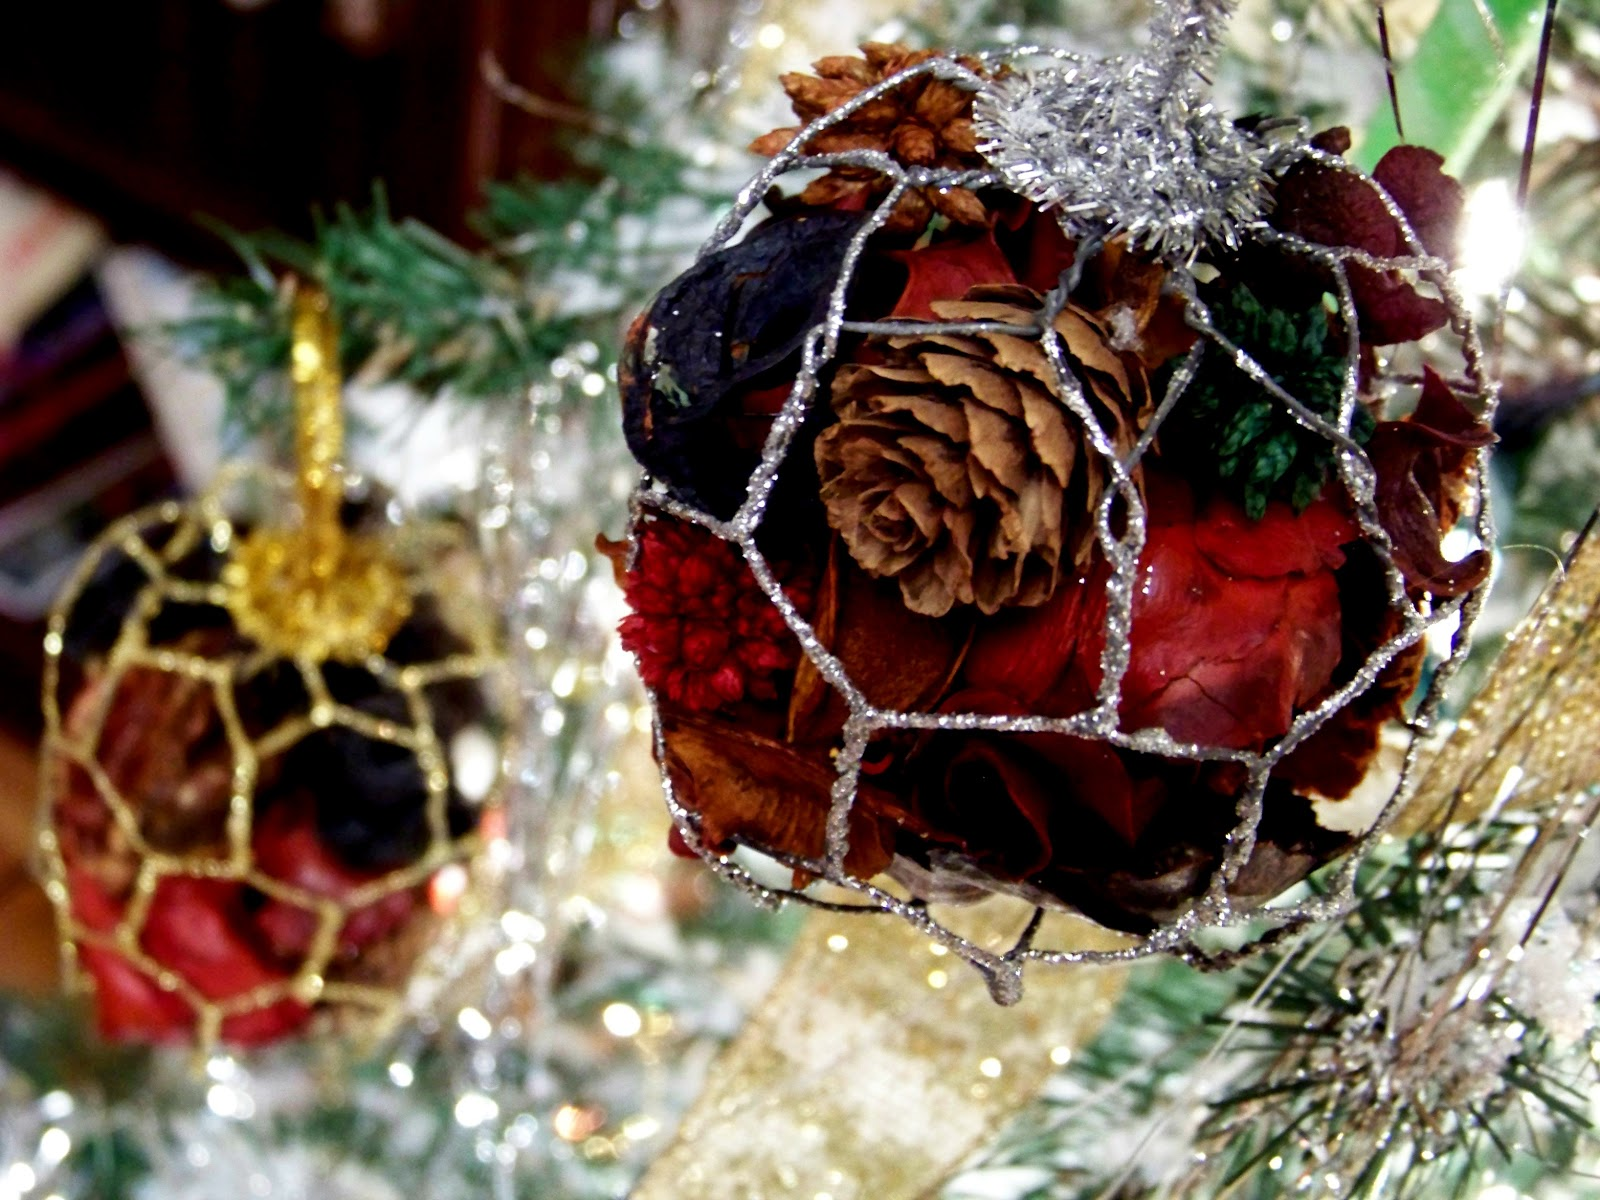 Chicken christmas ornaments - I Ve Never Really Thought About Chicken Wire In Any Sense Other Than Utilitarian Purposes Until The Other Day When I Was Shopping At A Christmas Store And